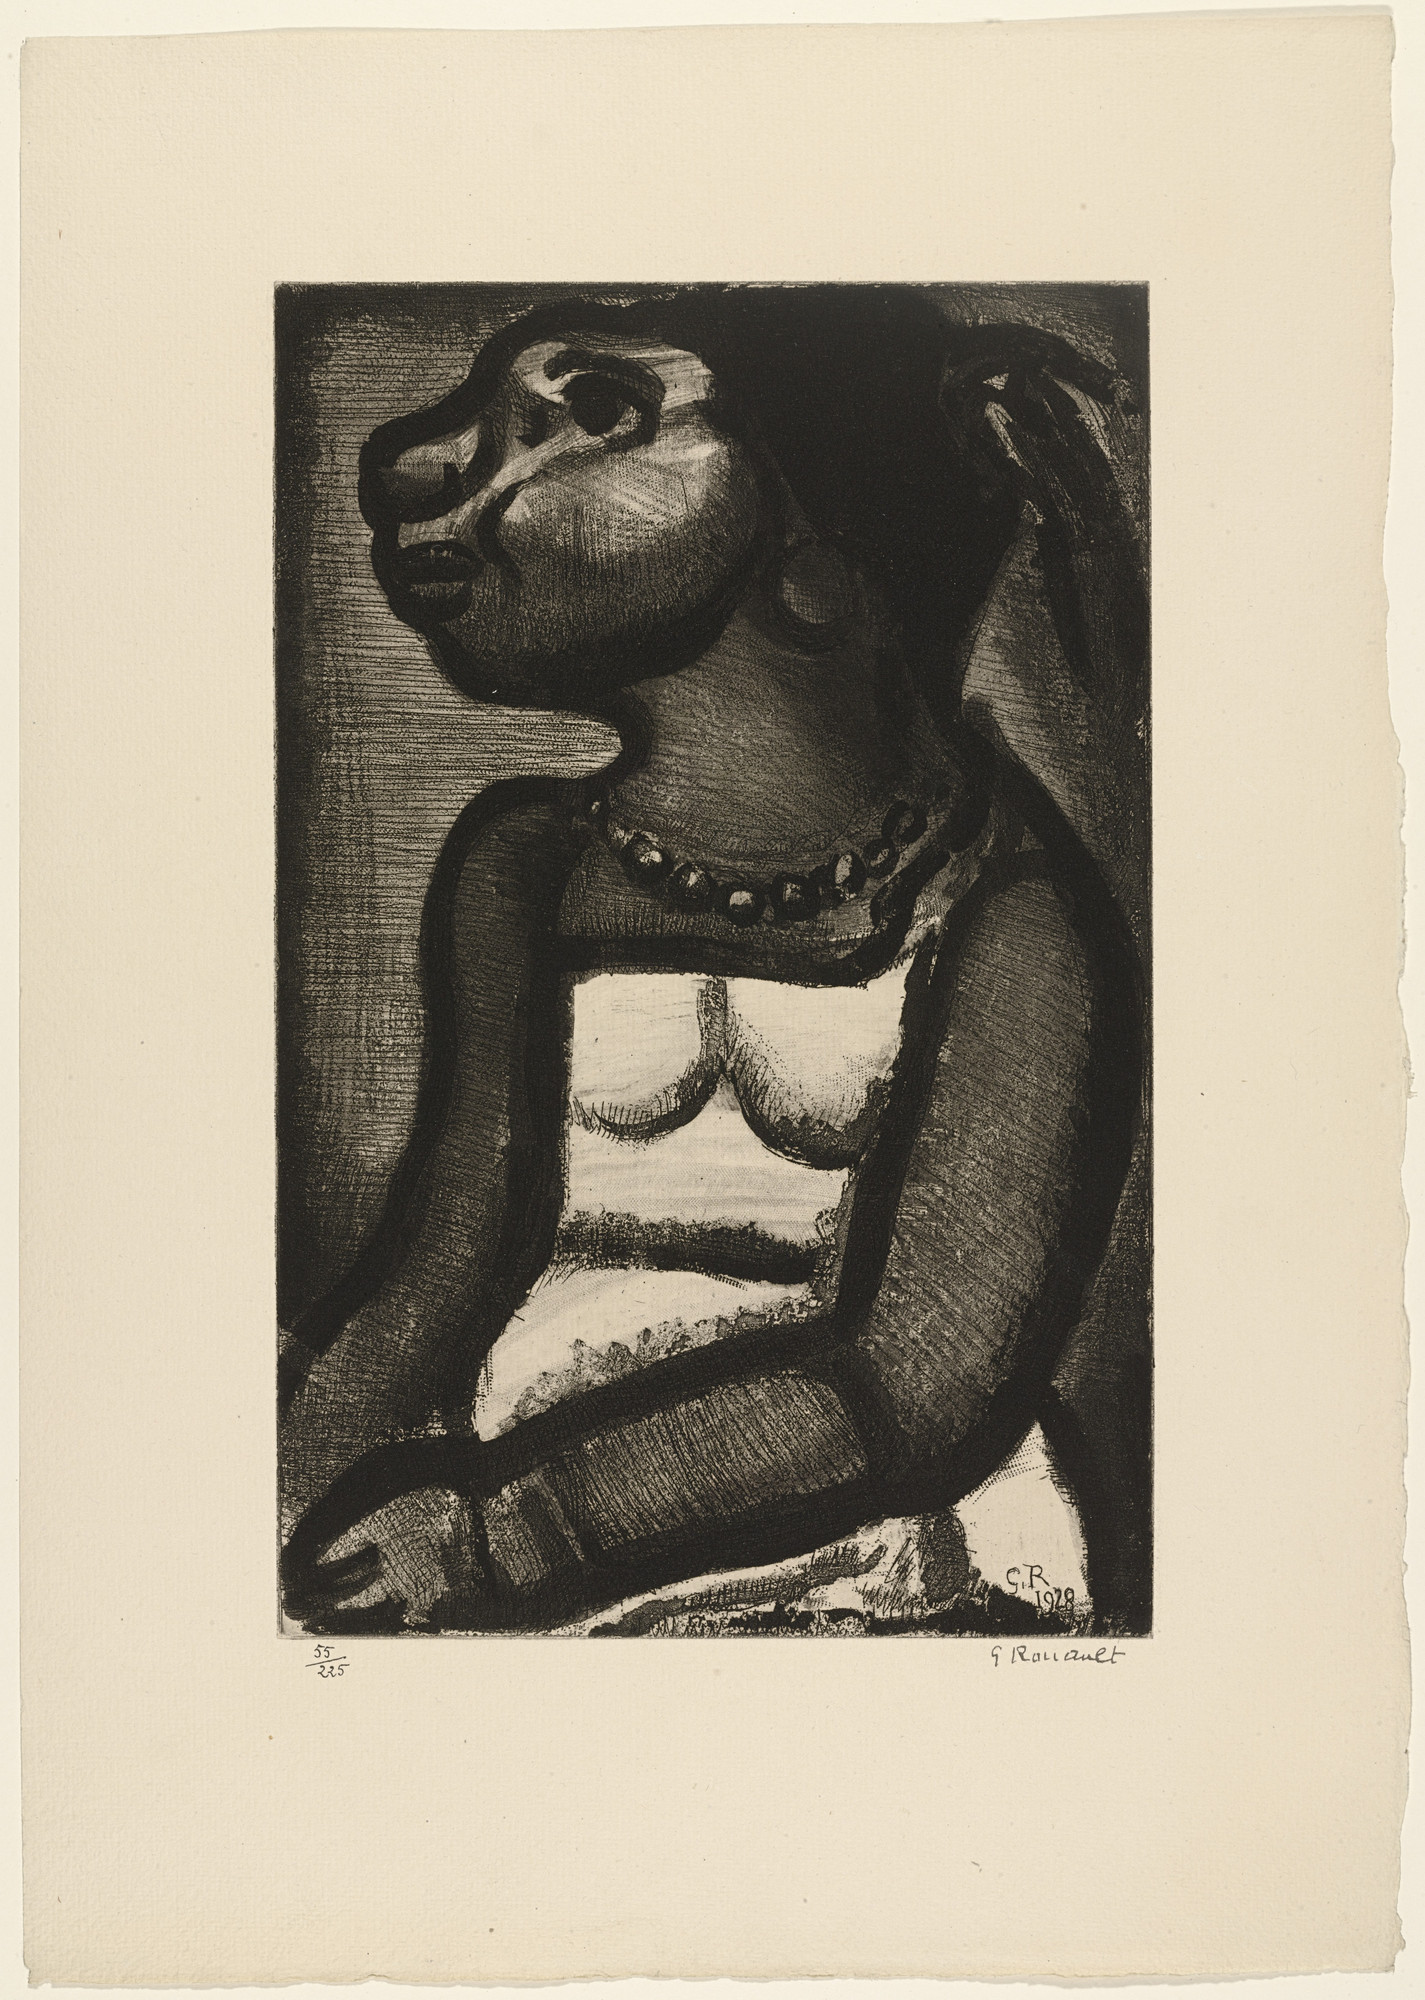 Georges Rouault. Seated Woman with Necklace from Réincarnations du Père Ubu. (1932)